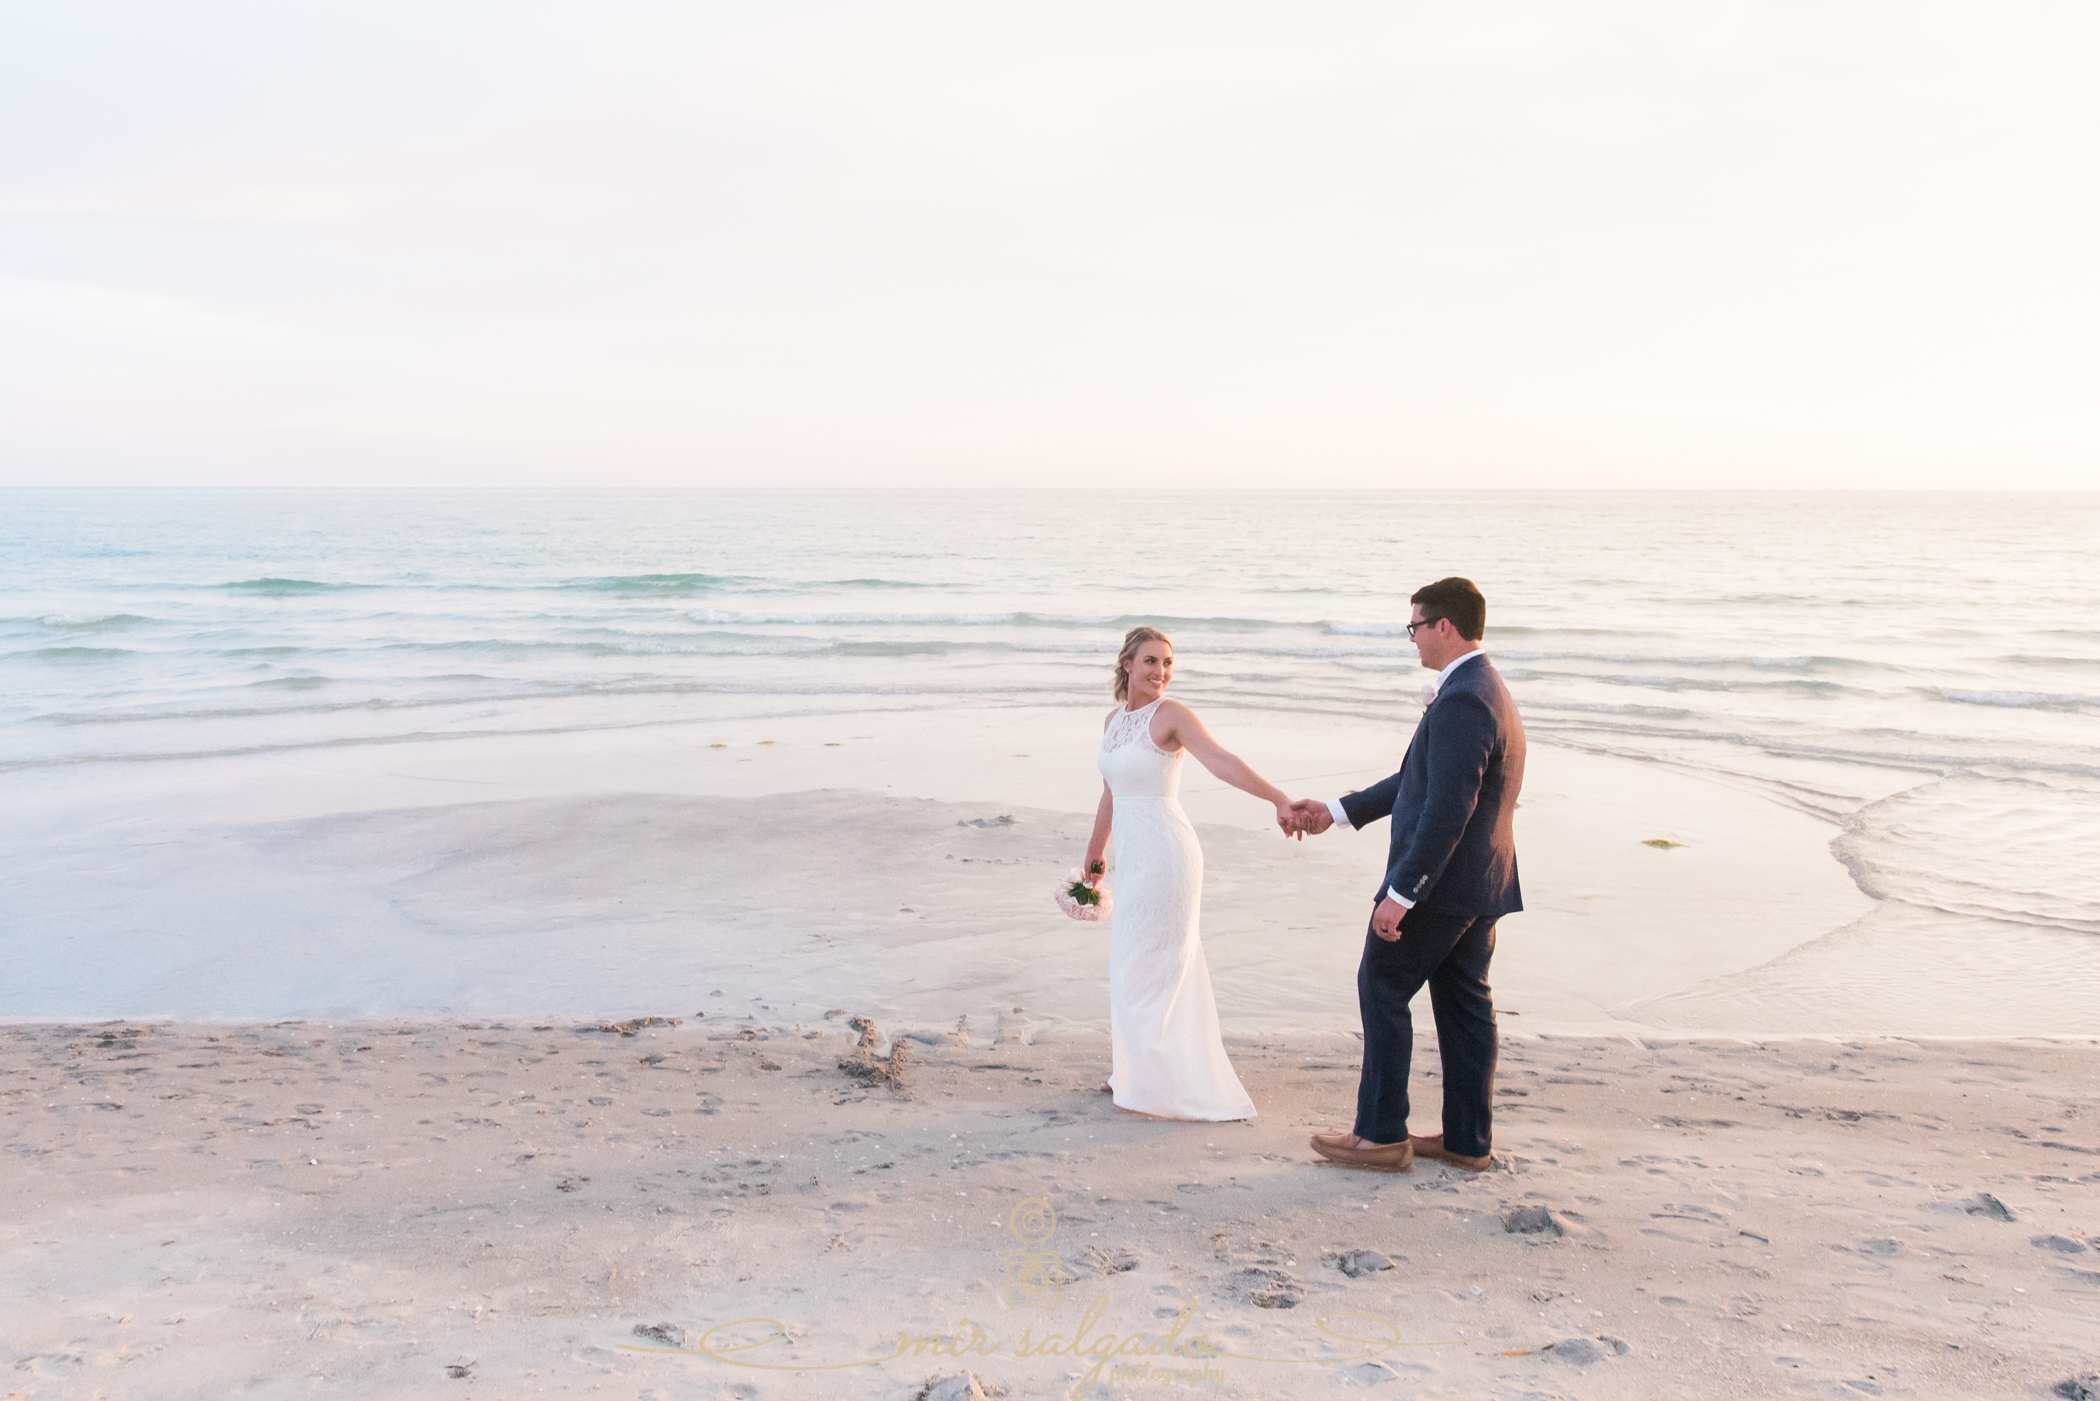 wedding-walk-on-the-beach, beach-sunset-wedding, beach-walk-resort, florida-beach-wedding, planning-a-beach-wedding